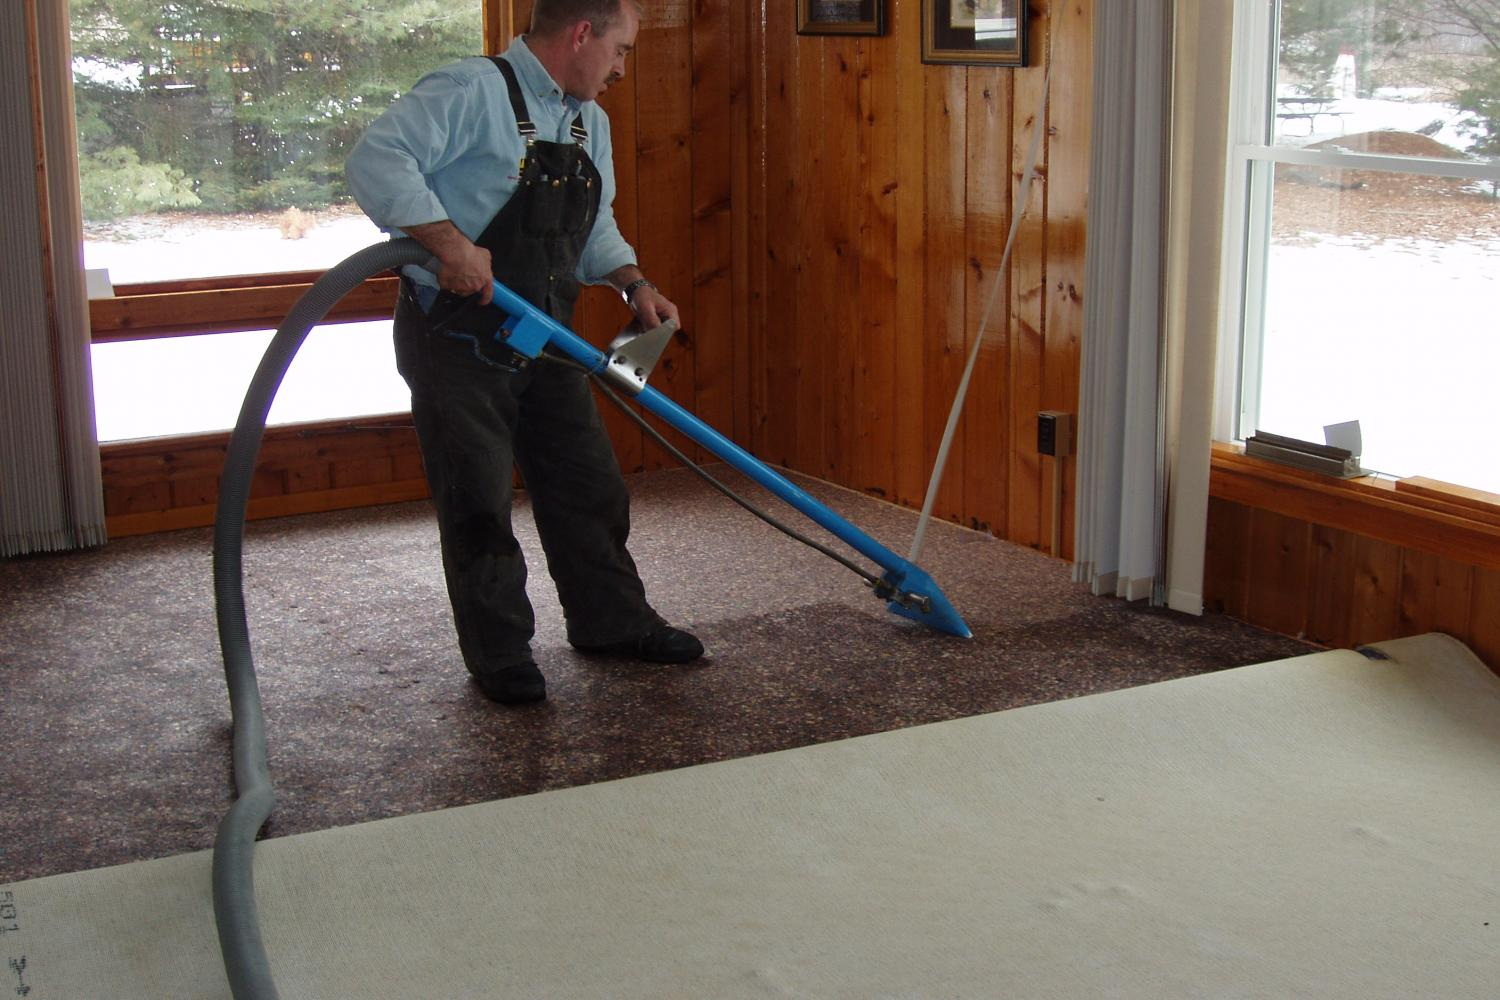 We Take Care And Pride In Your Home Business When Serving Cleaning Needs